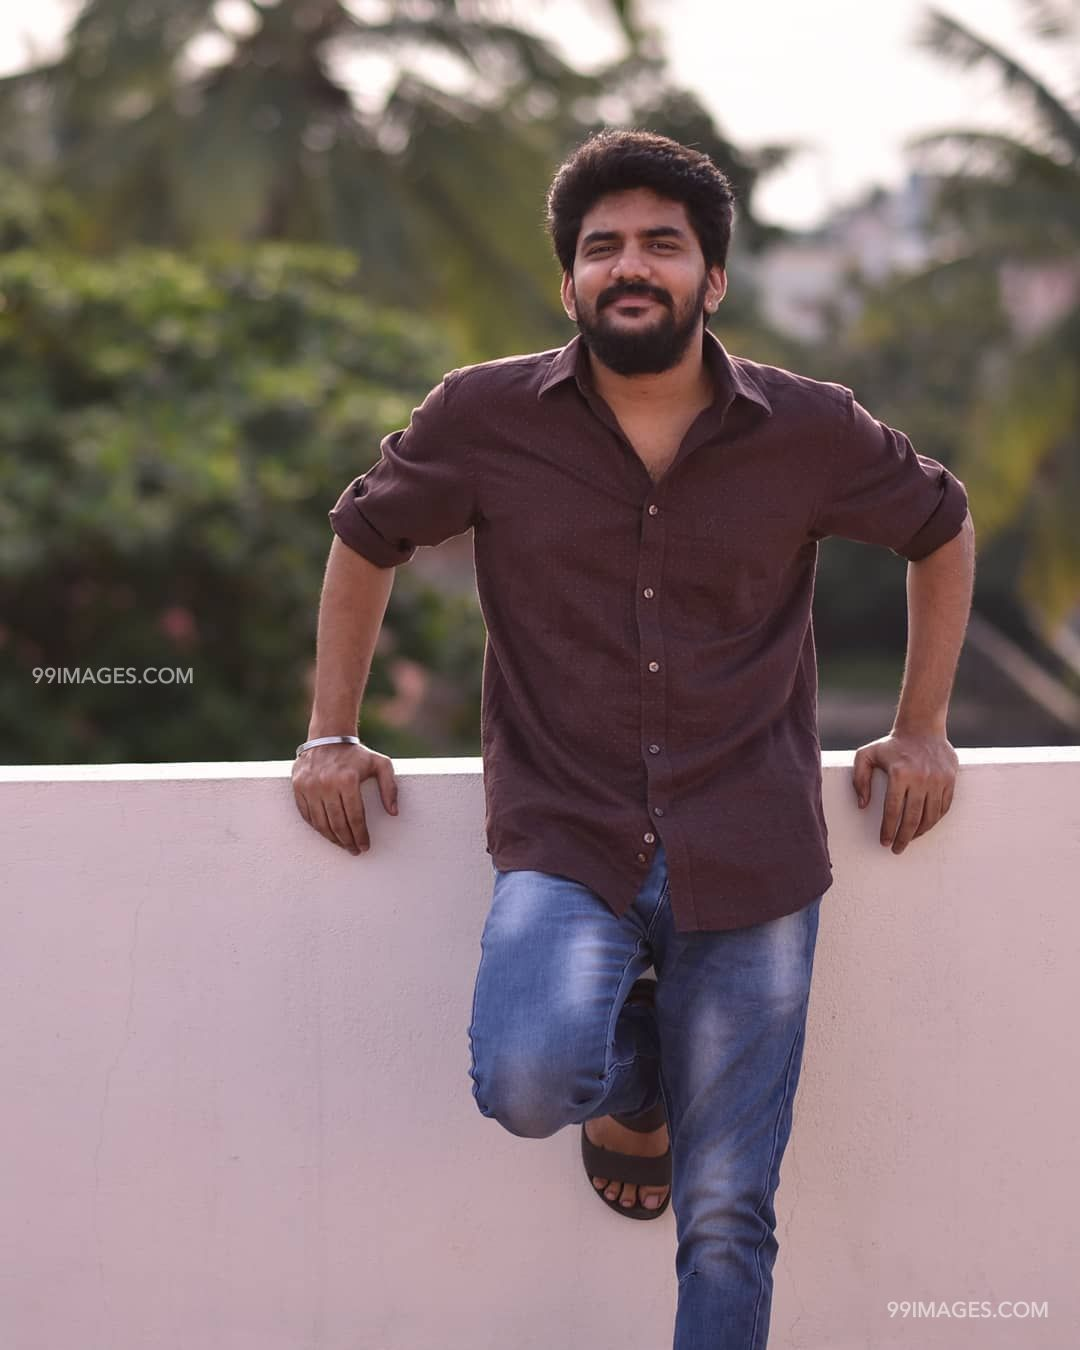 75+ Kavin Photoshoot Images & HD Wallpapers (1080p) [2019]